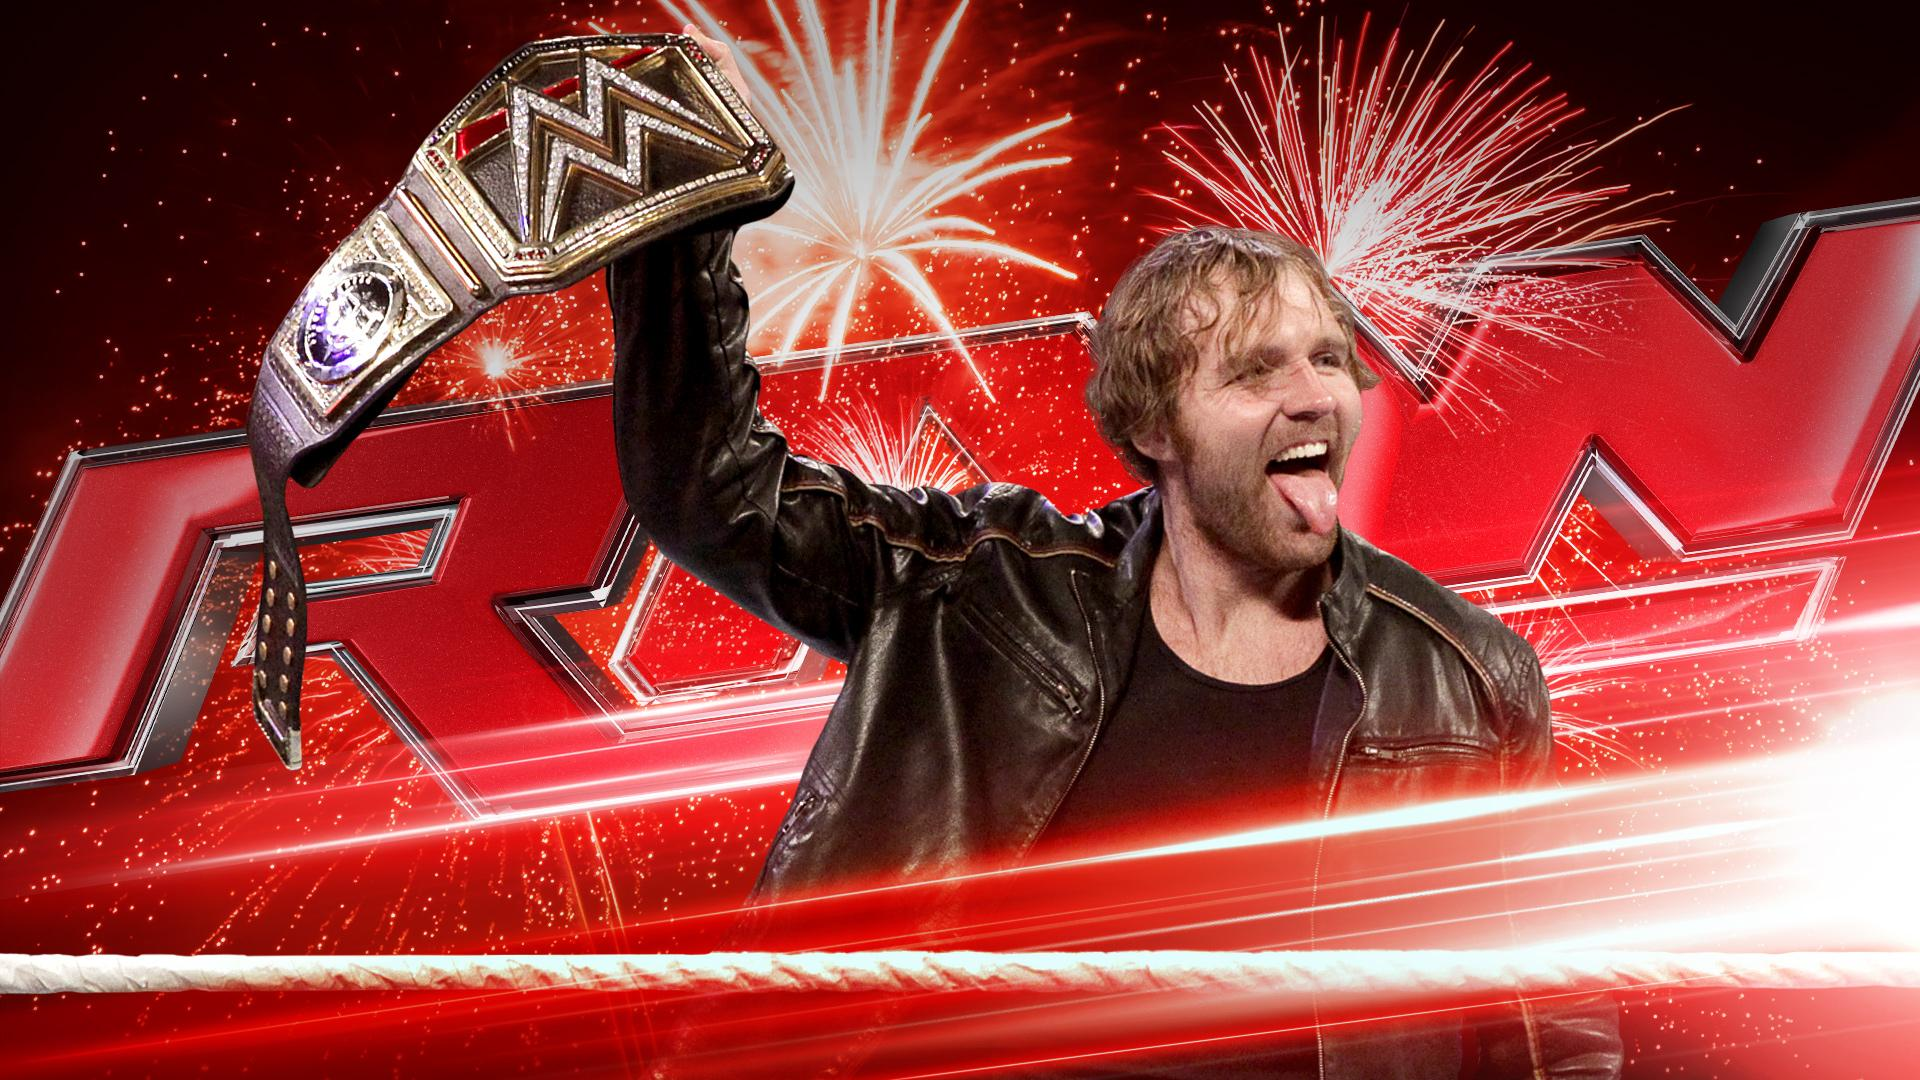 20160630_Show_Preview-RAW_Ambrose--dc52b22628433900295b480036c61b5f